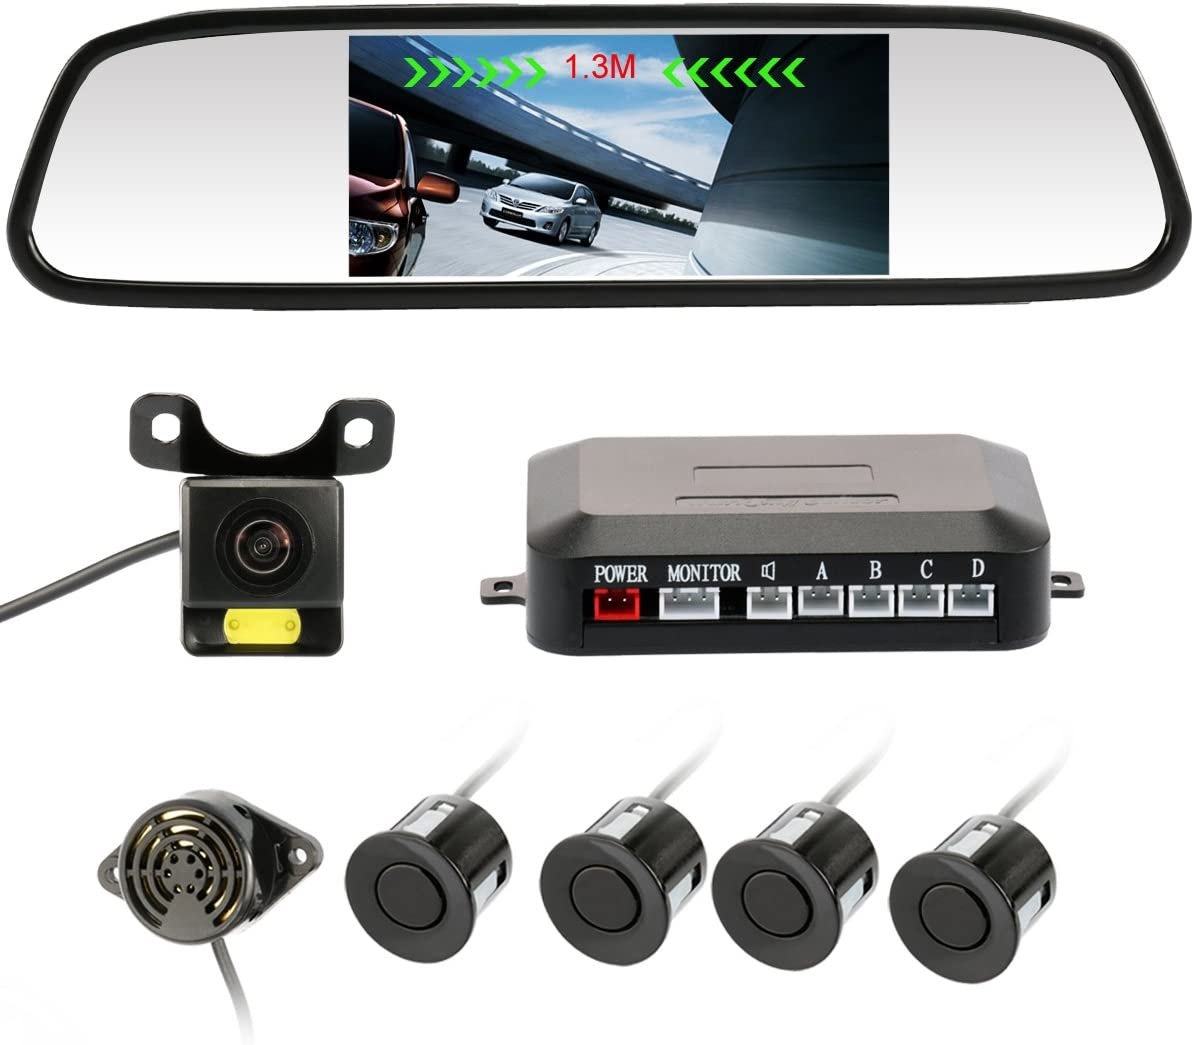 VORCOOL Waterproof High Definition Color Wide Viewing Angle License Plate Car Rear View Camera with 7 Infrared Night Vision LED